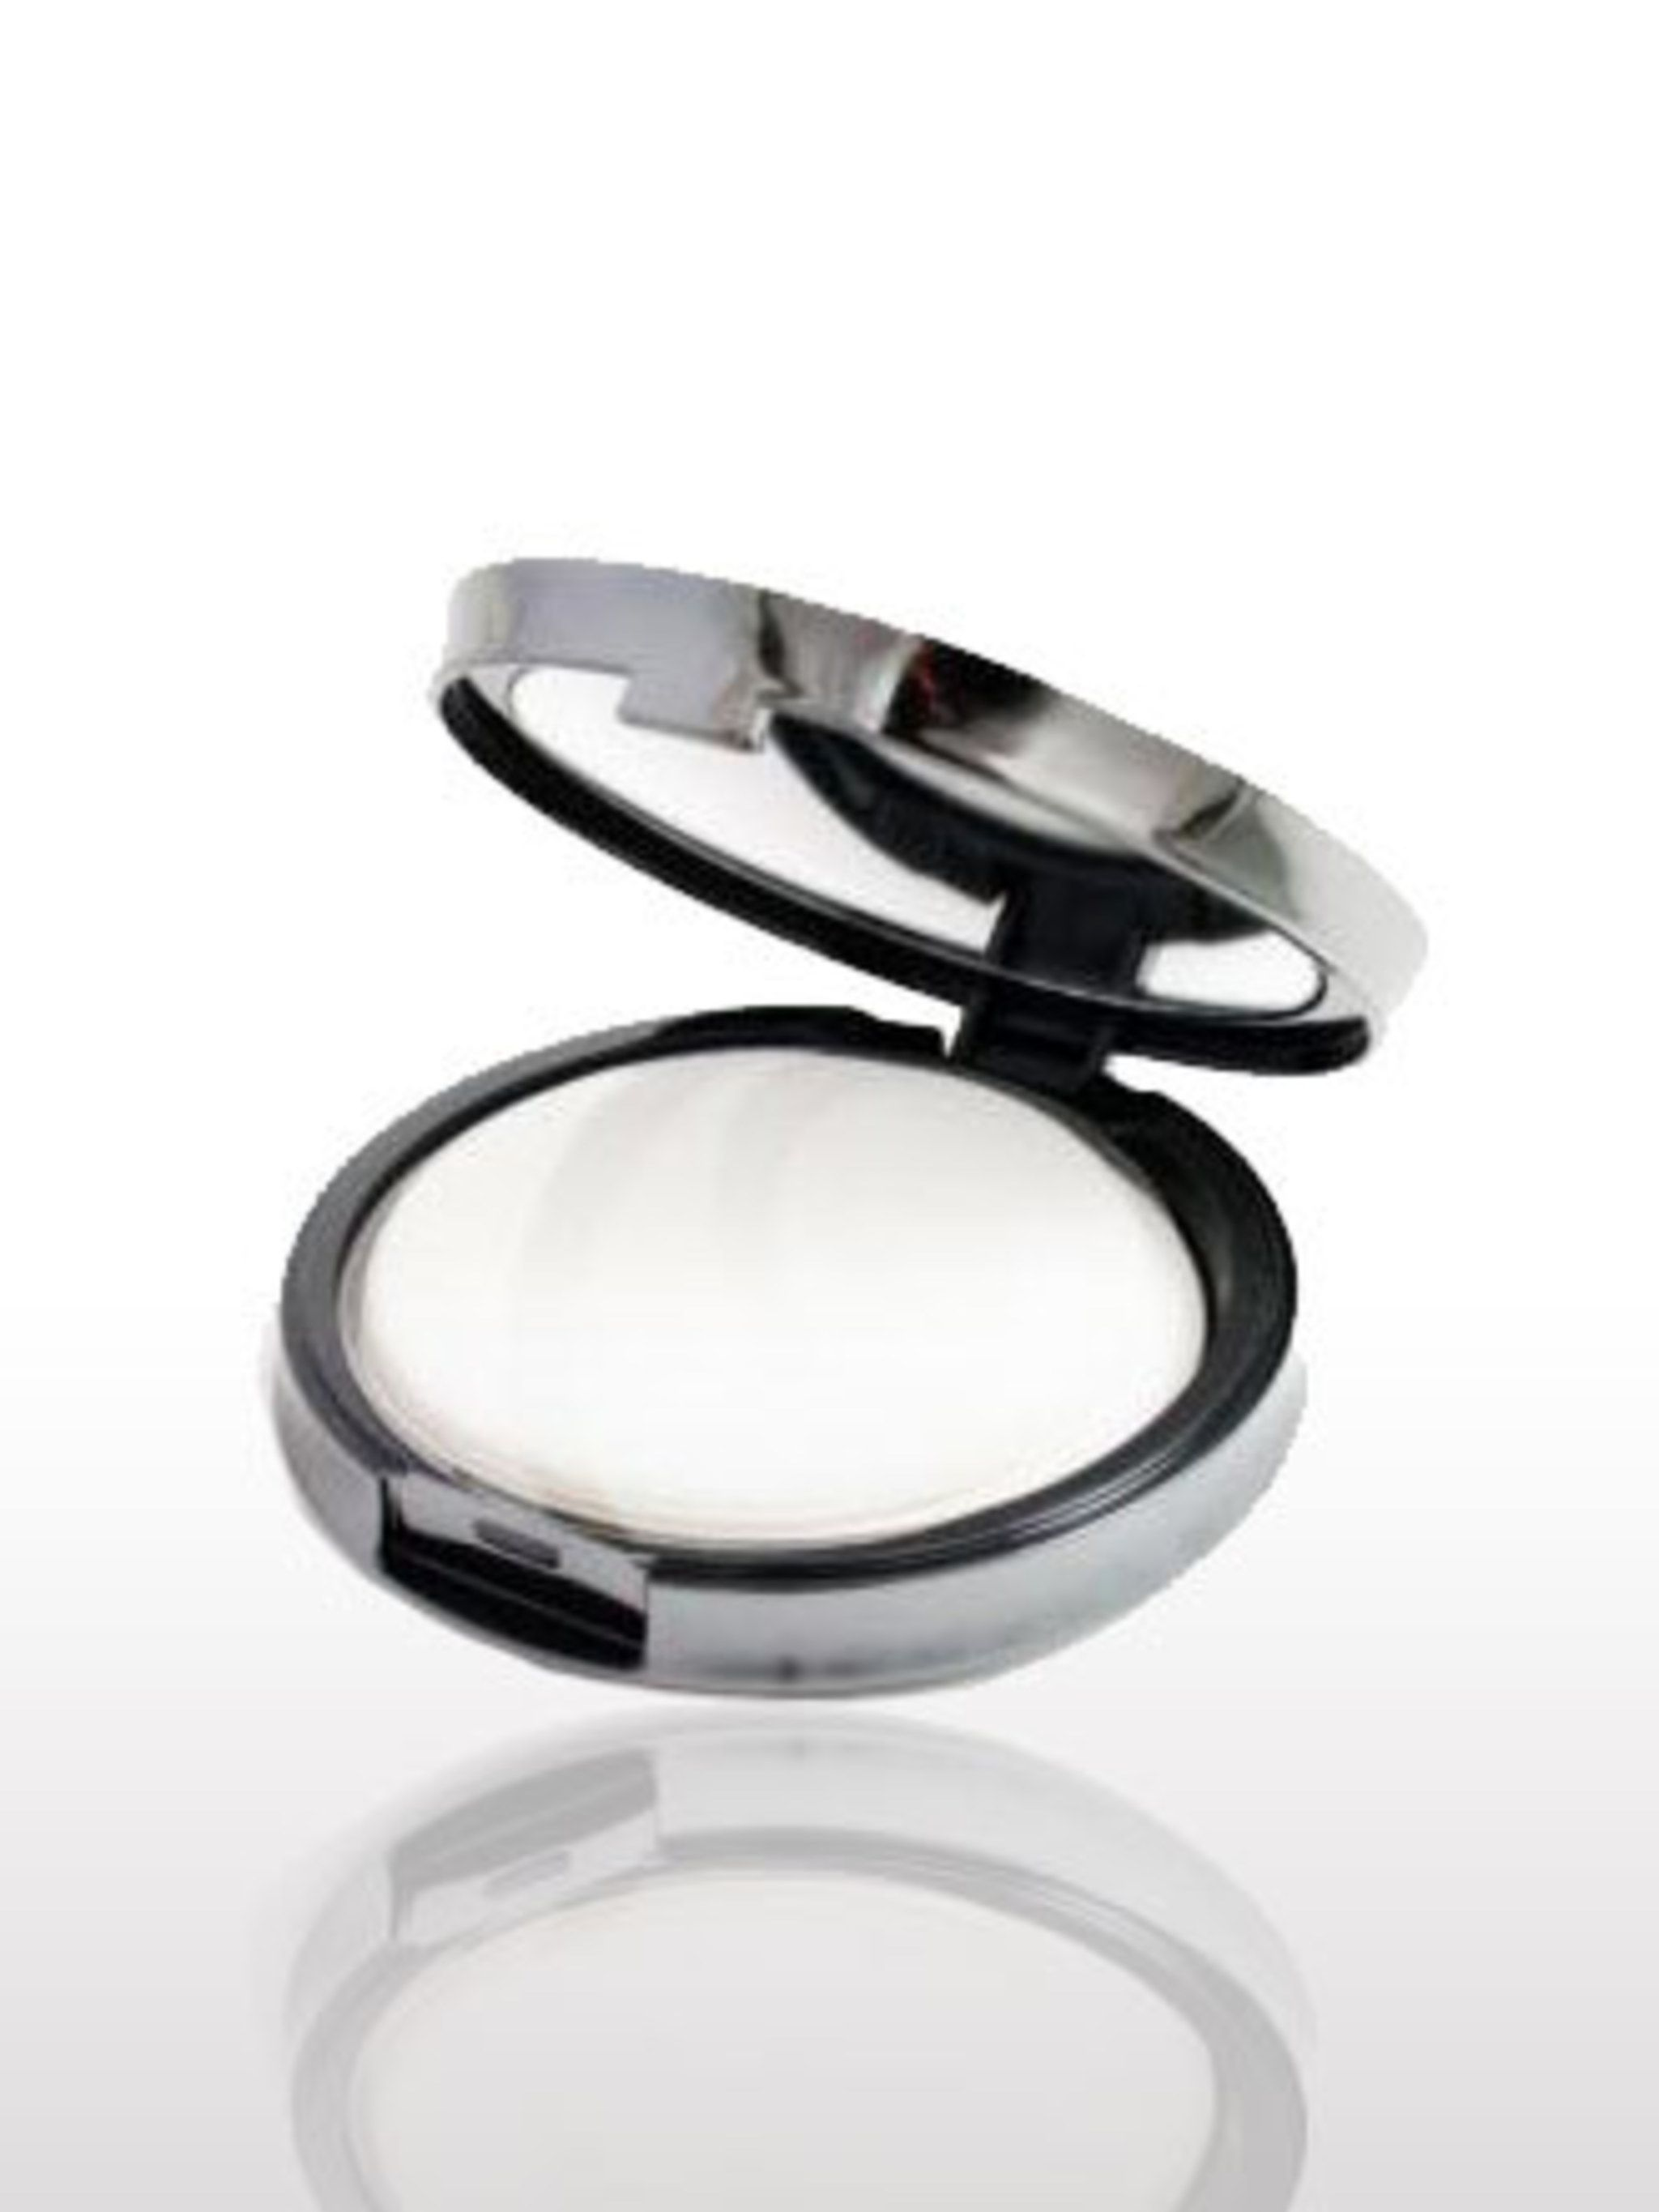 "<p>A shiny t-zone is a no-no, especially when you're dressed up to the nines. Carry this invisible blotting powder with you at all times for touch-ups on the go.</p><p>Invisible Blotting Powder, £17.62 by Daniel Sandler at <a href=""http://www.beautique.co"